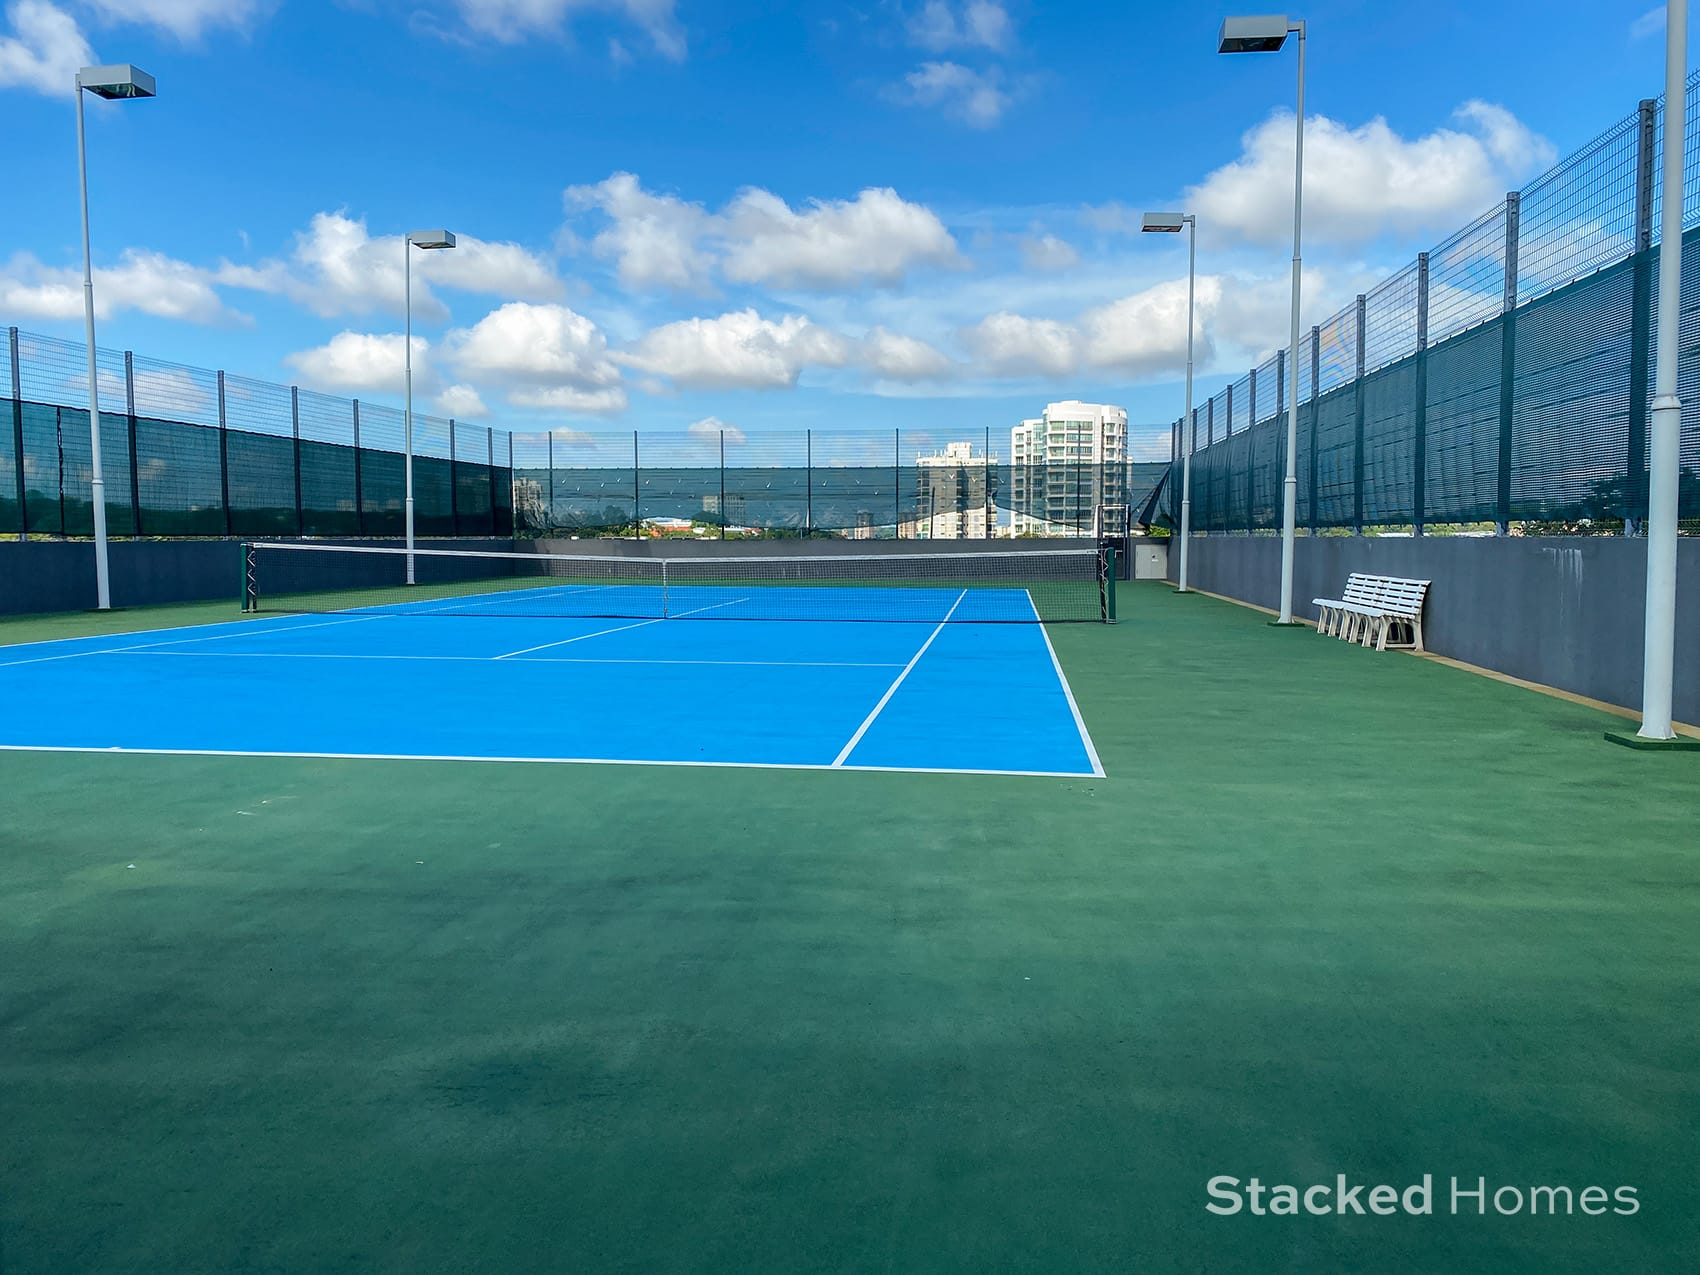 Robing residences tennis court